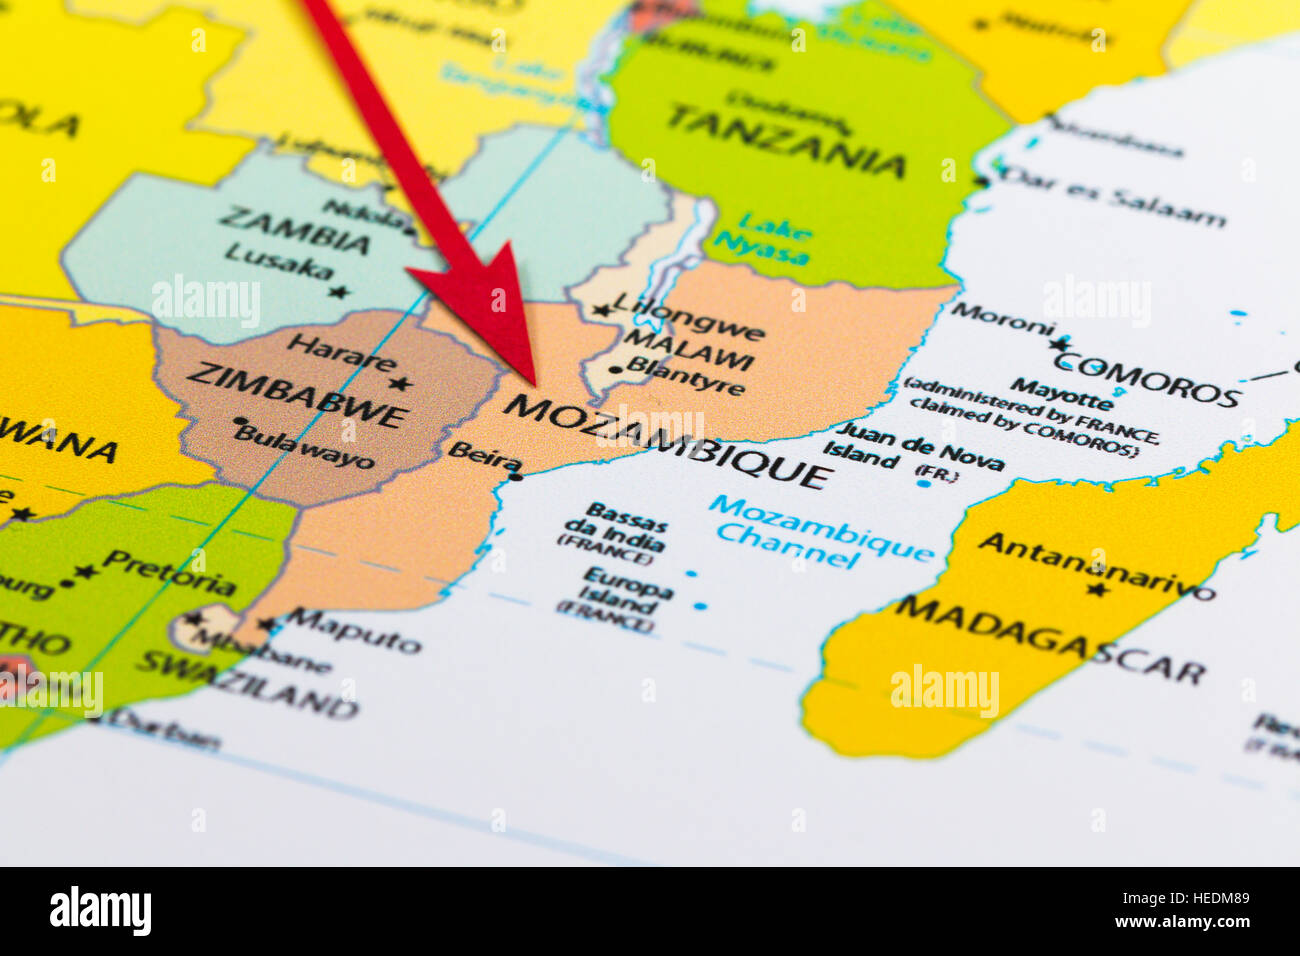 Red arrow pointing mozambique on the map of africa continent stock red arrow pointing mozambique on the map of africa continent sciox Choice Image